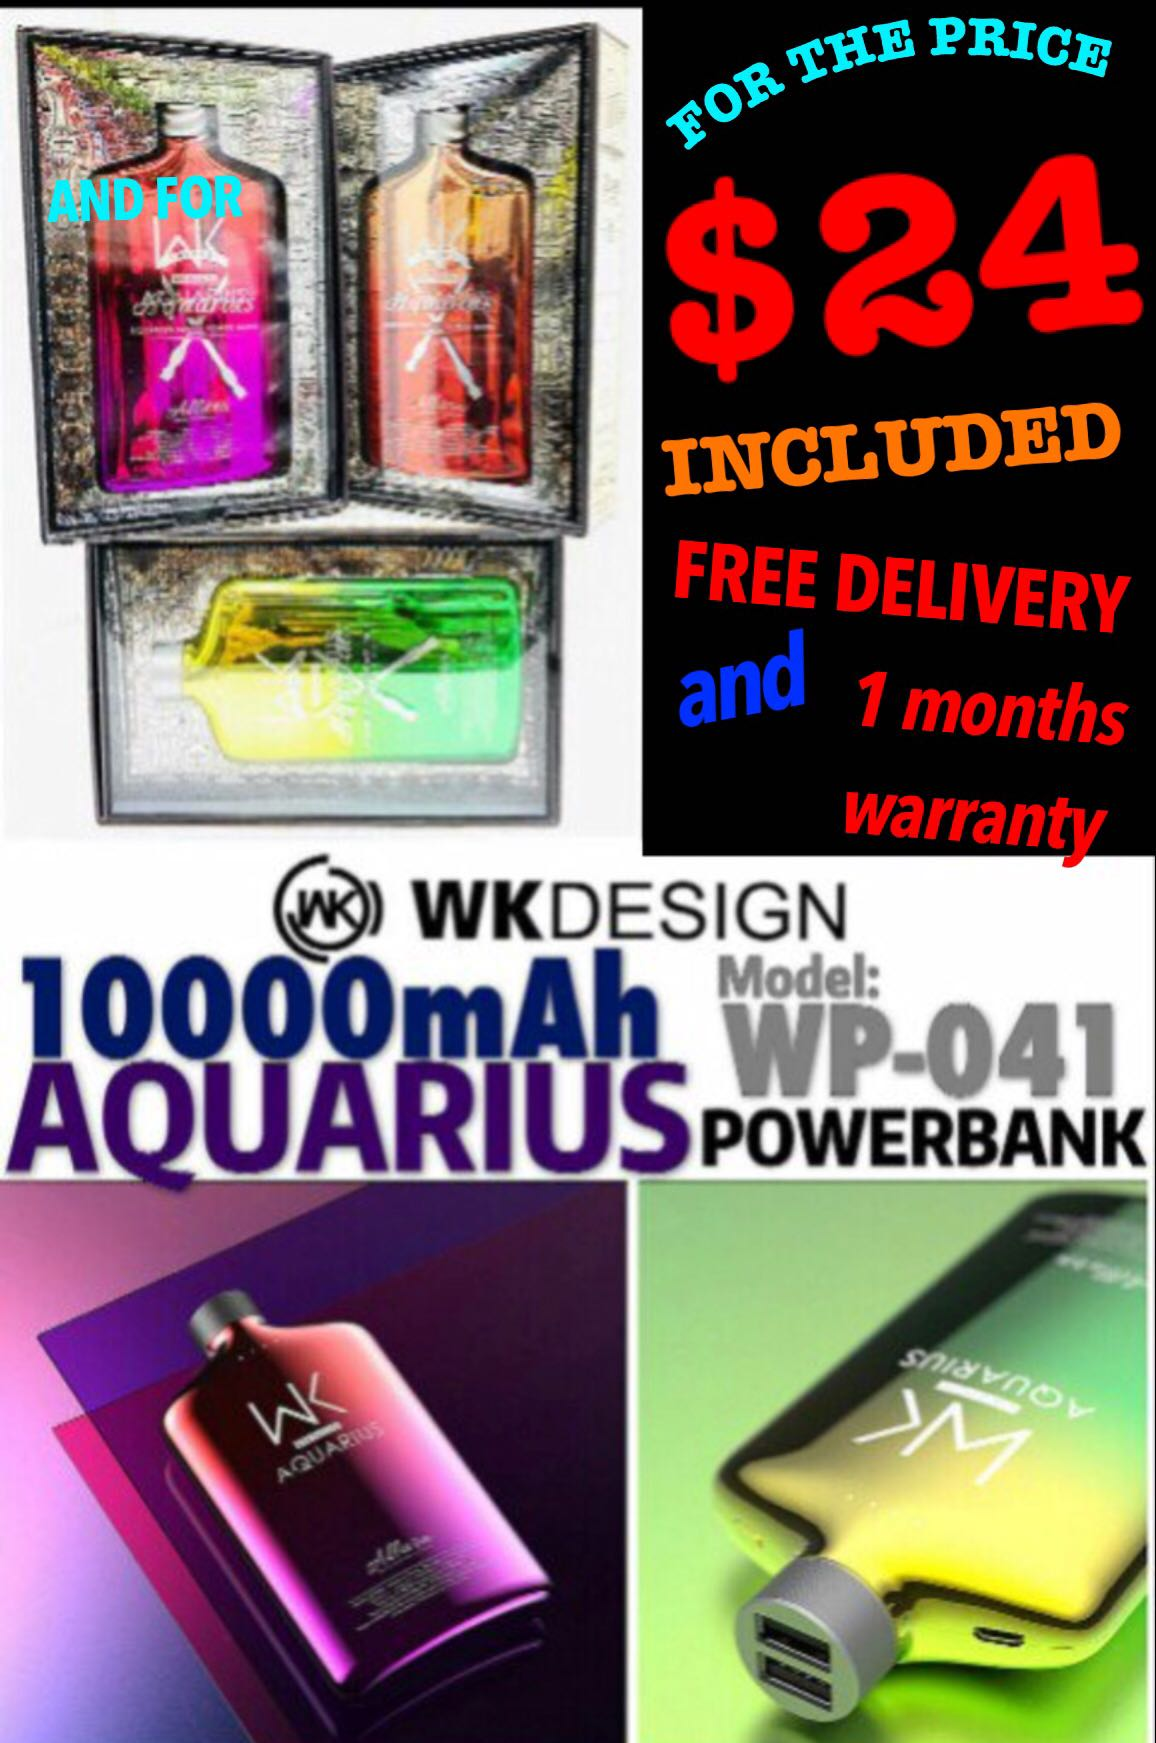 Wp 041 10000mah Power Bank Now Usual The Price Mobile Phones Wk Design Powerbank Mirror 10000 Mah Tablets Tablet Accessories Banks Chargers On Carousell